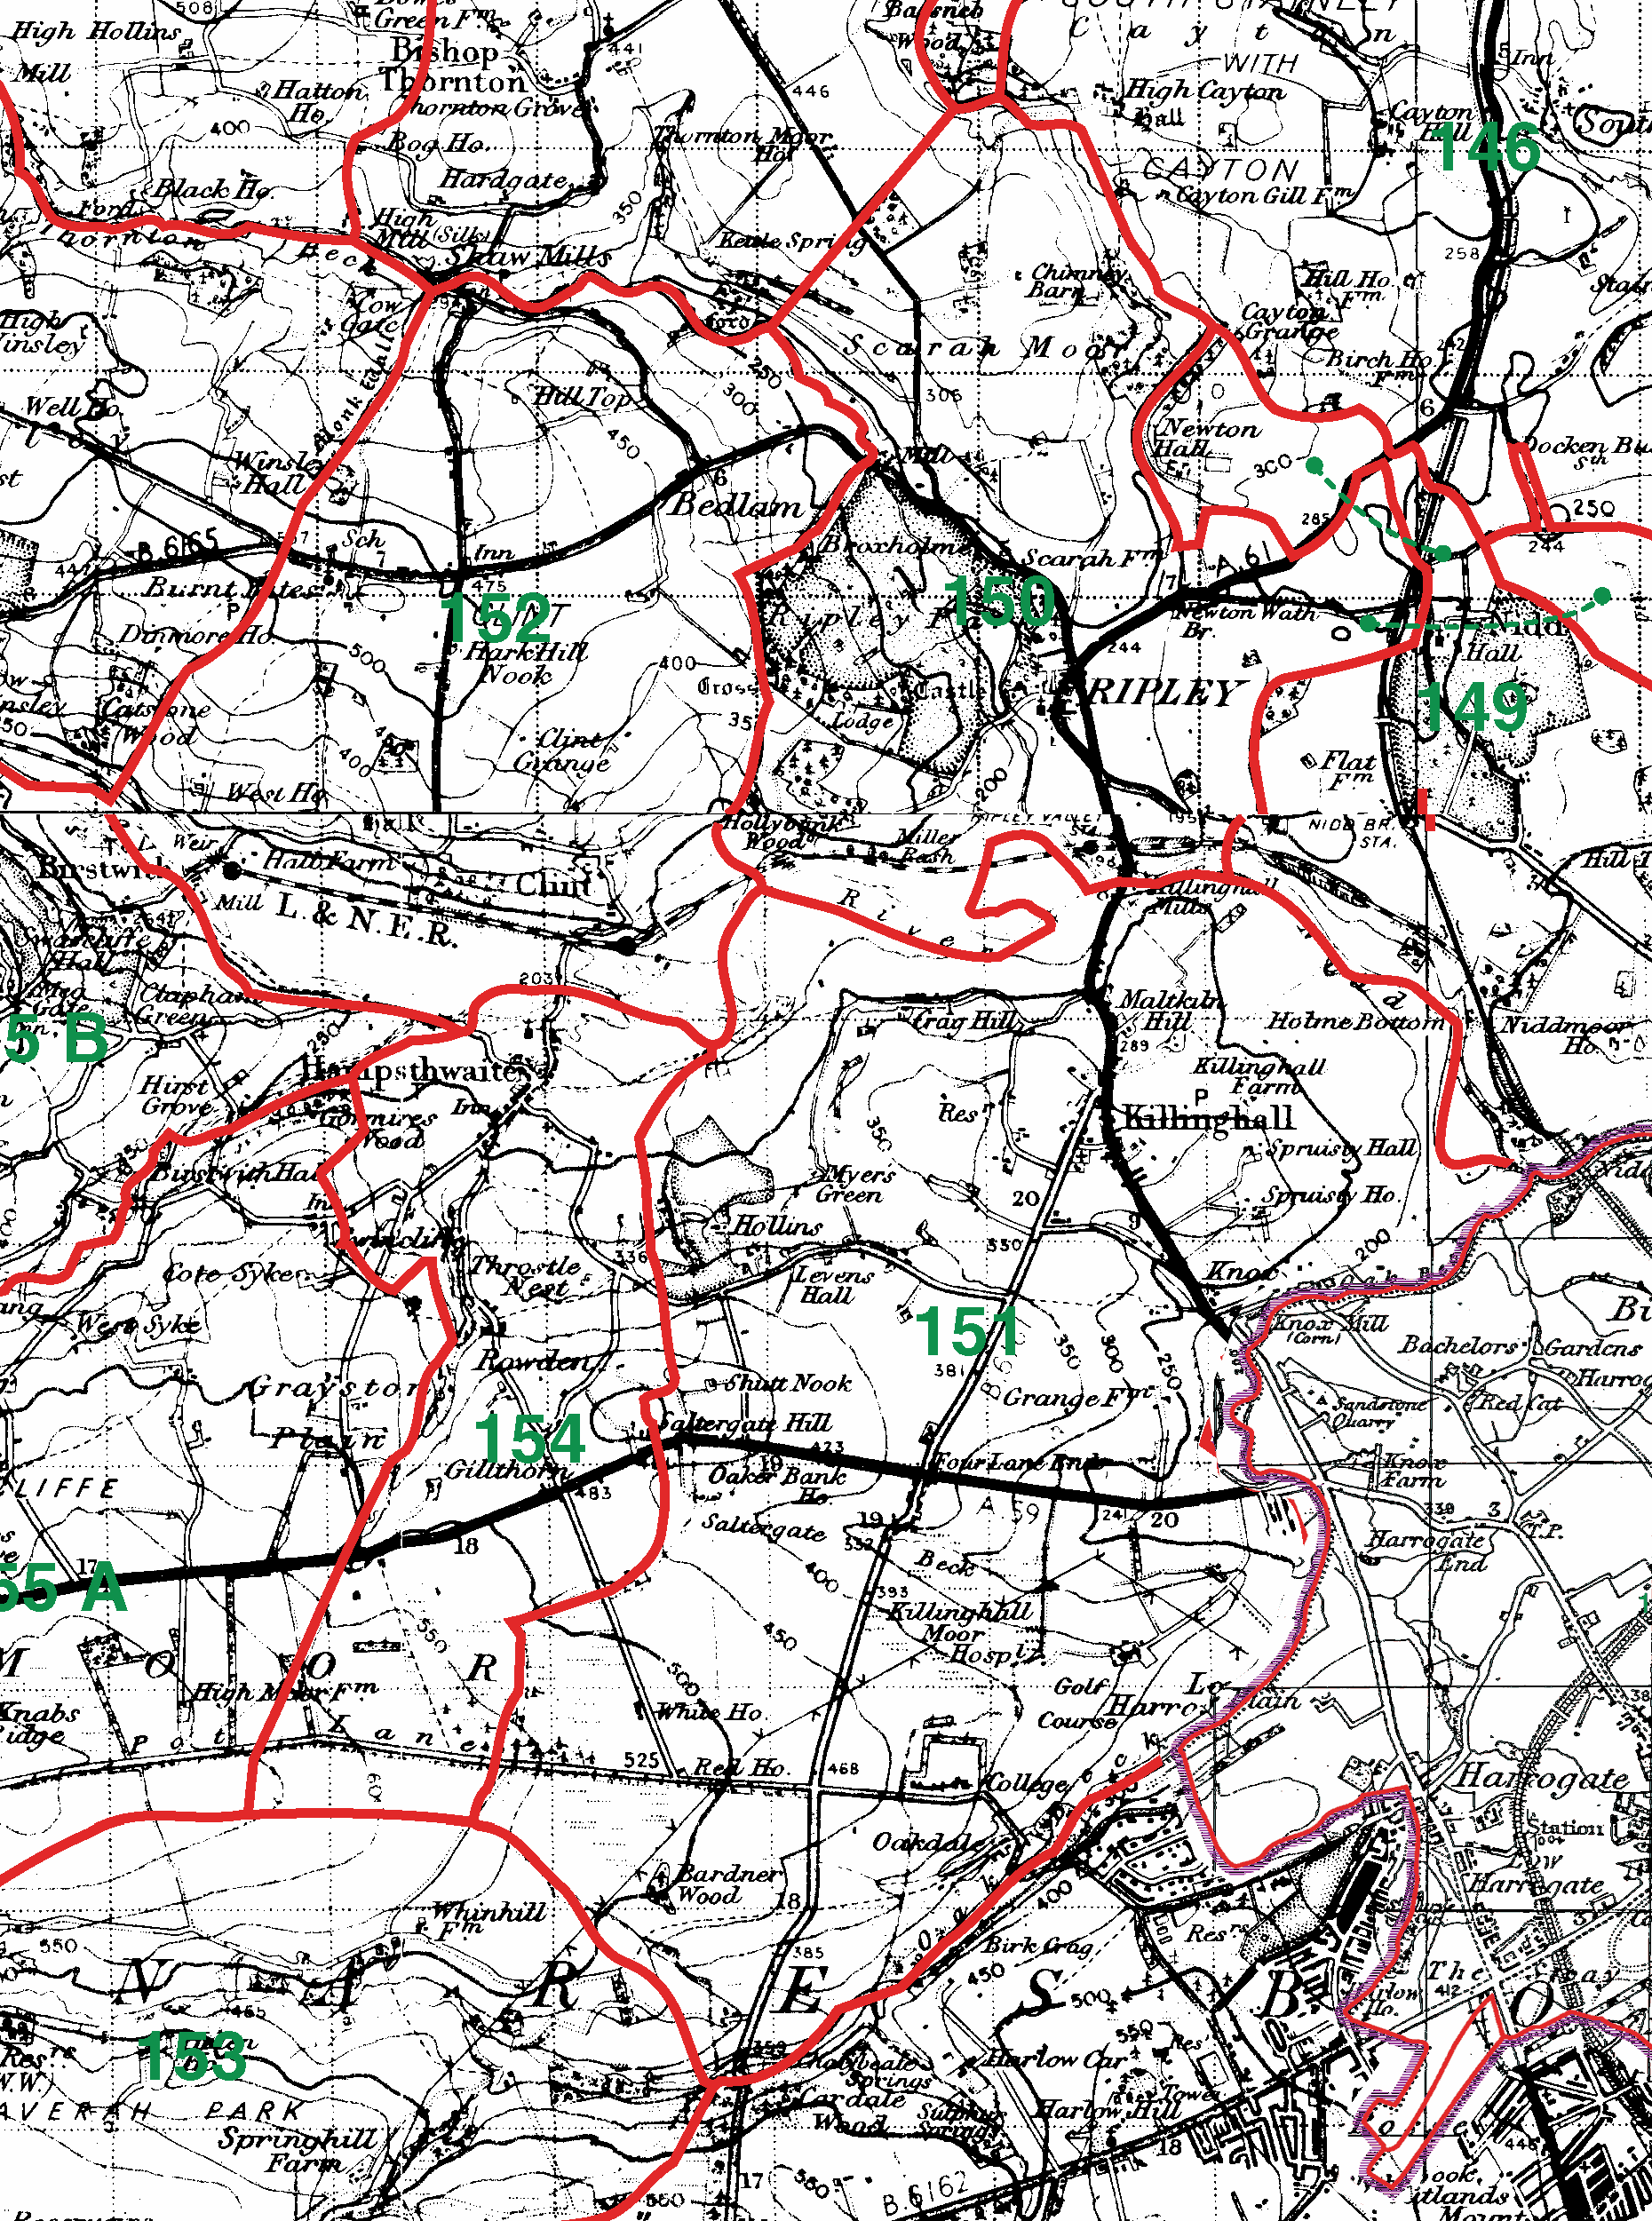 Ripley boundaries map